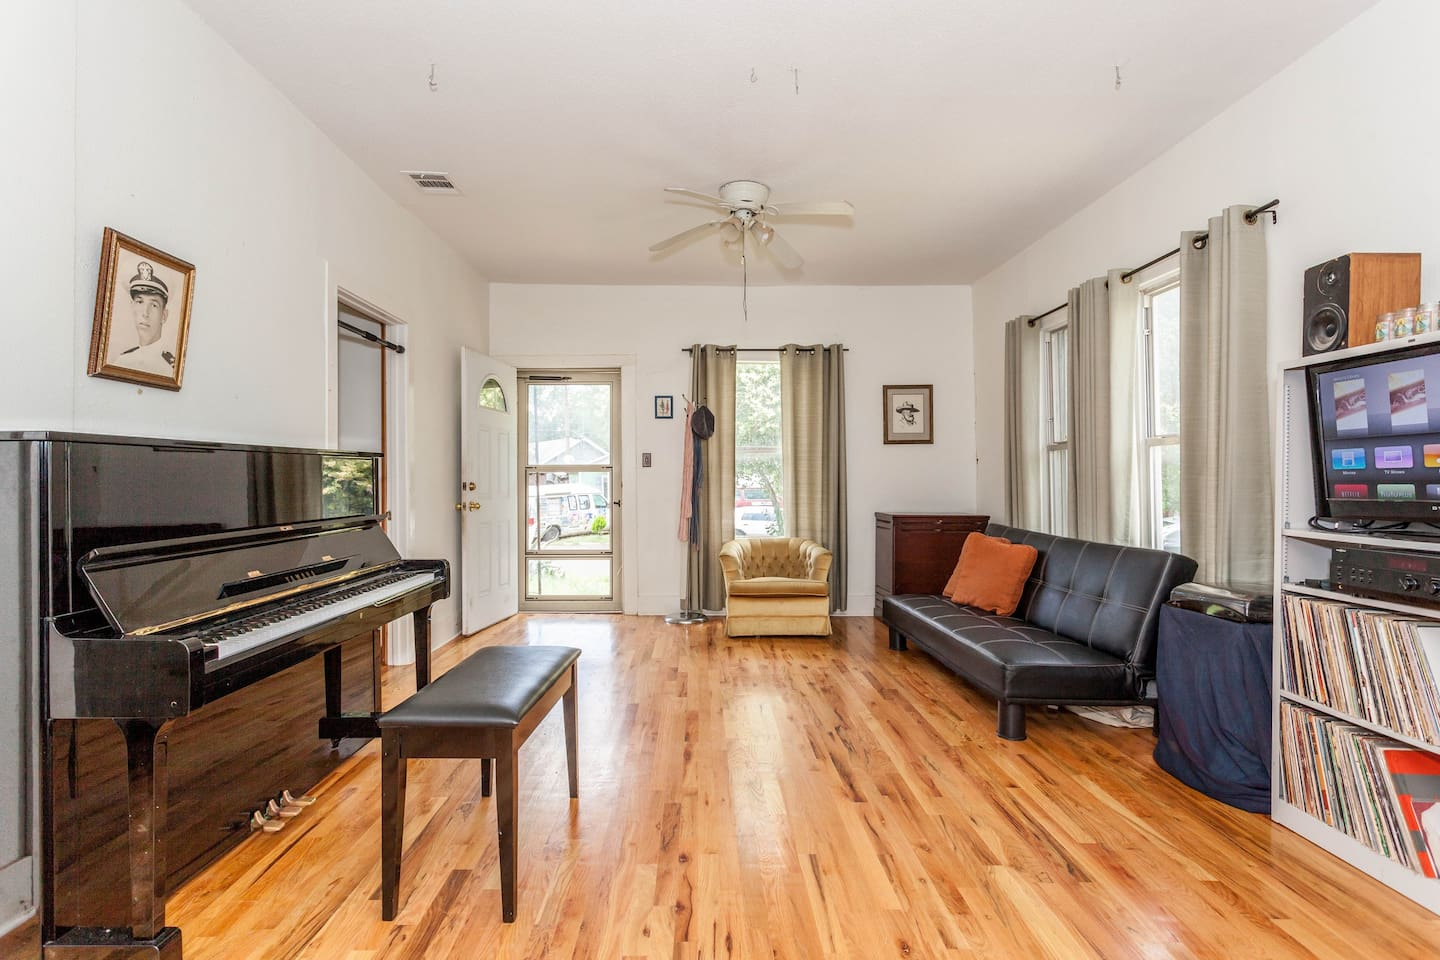 Lots of natural light in the living room.  Very spacious and clean.